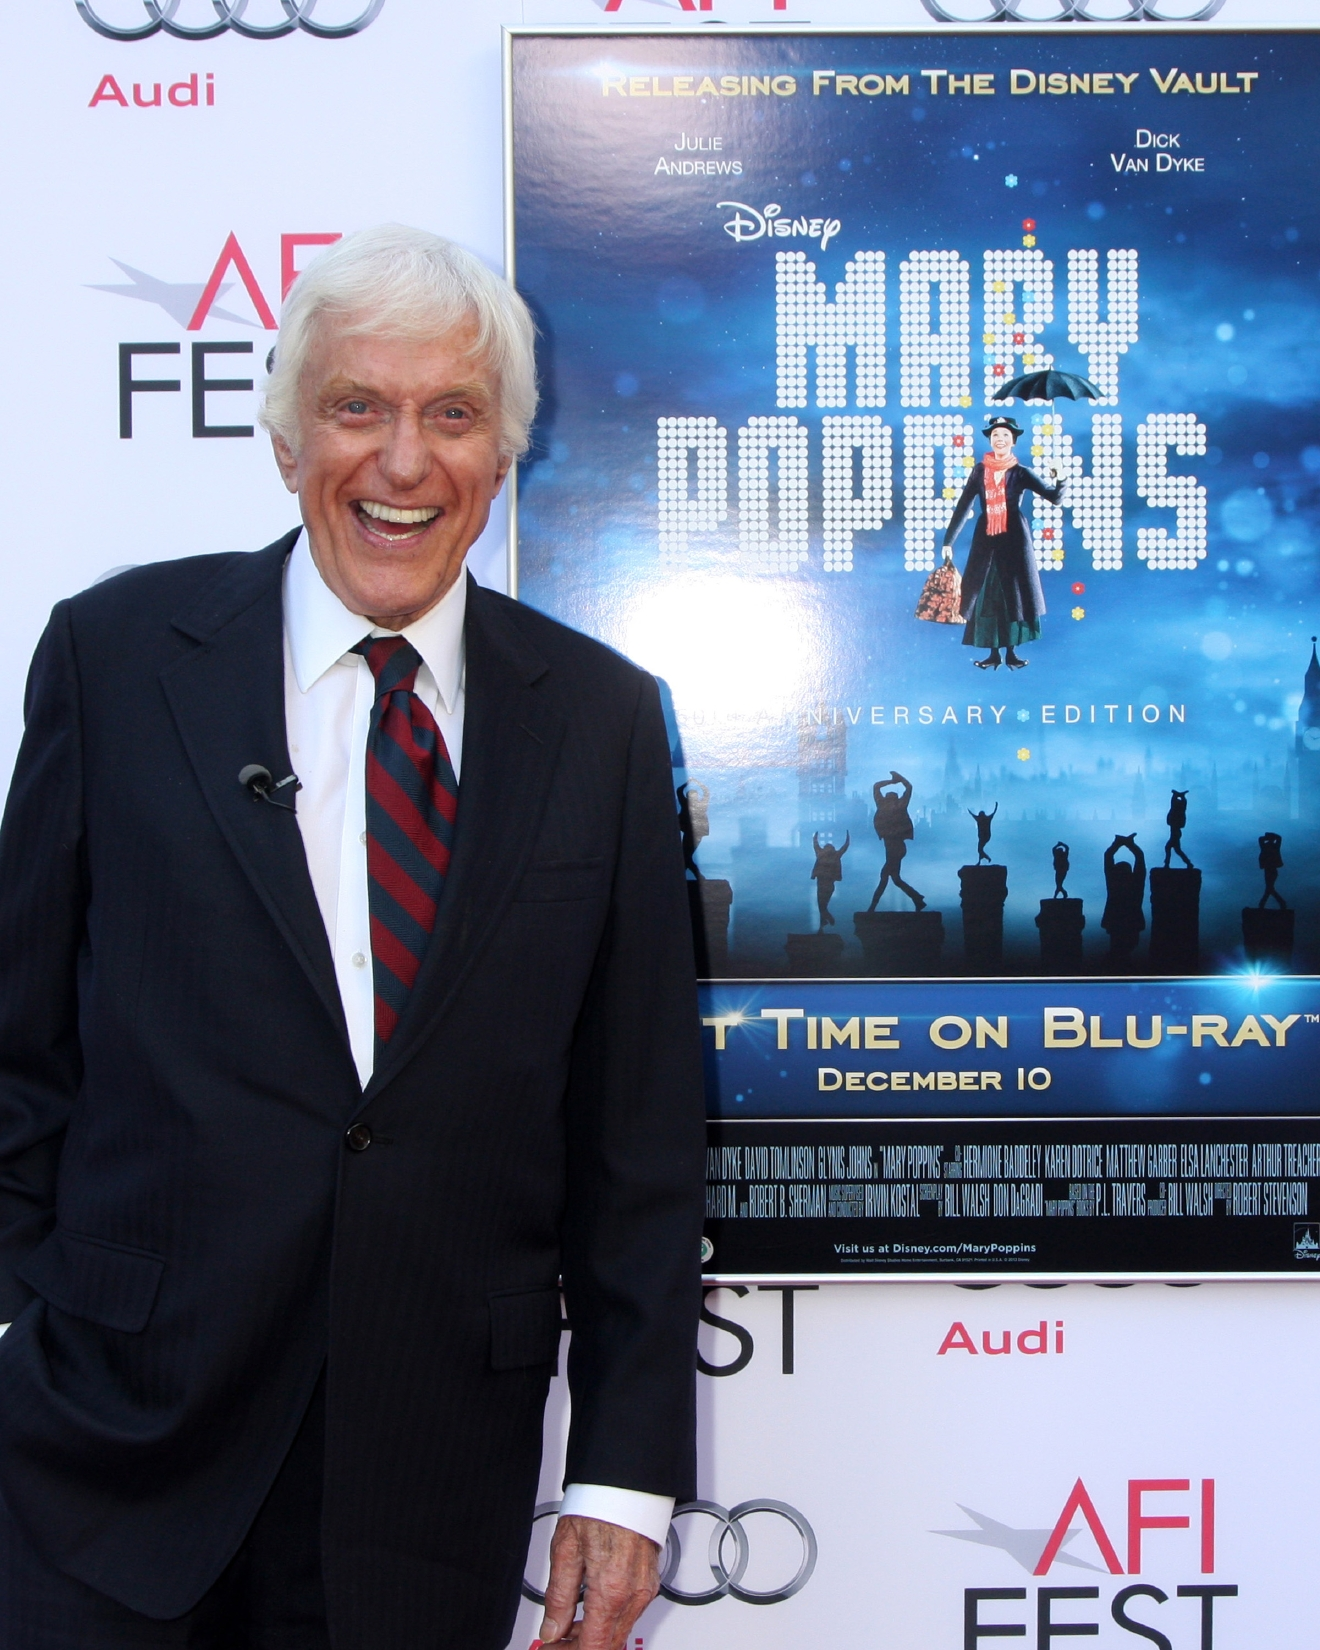 Mary Poppins 50th Anniversary Screening at AFI Fest at TLC Chinese Theater                                    Featuring: Dick Van Dyke                  Where: Los Angeles, California, United States                  When: 10 Nov 2013                  Credit: Nikki Nelson/WENN.com